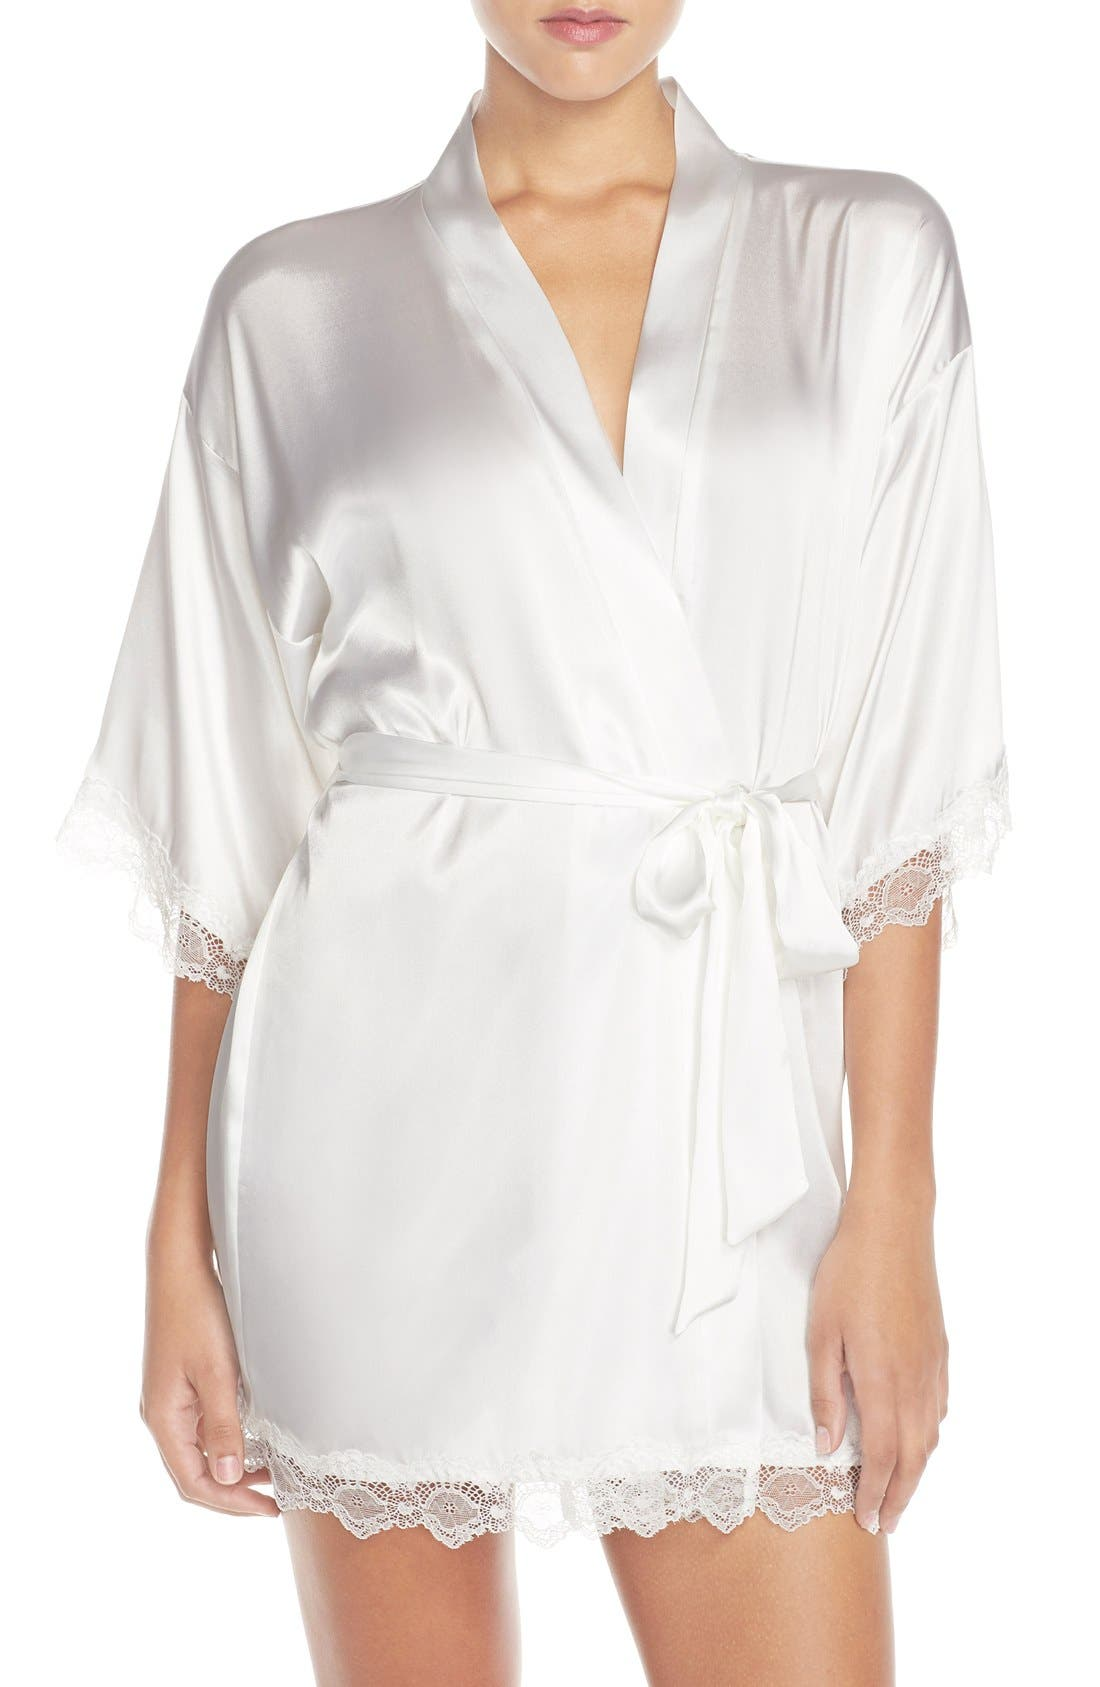 IN BLOOM BY JONQUIL,                             The Bride Short Satin Wrap,                             Alternate thumbnail 6, color,                             WHITE